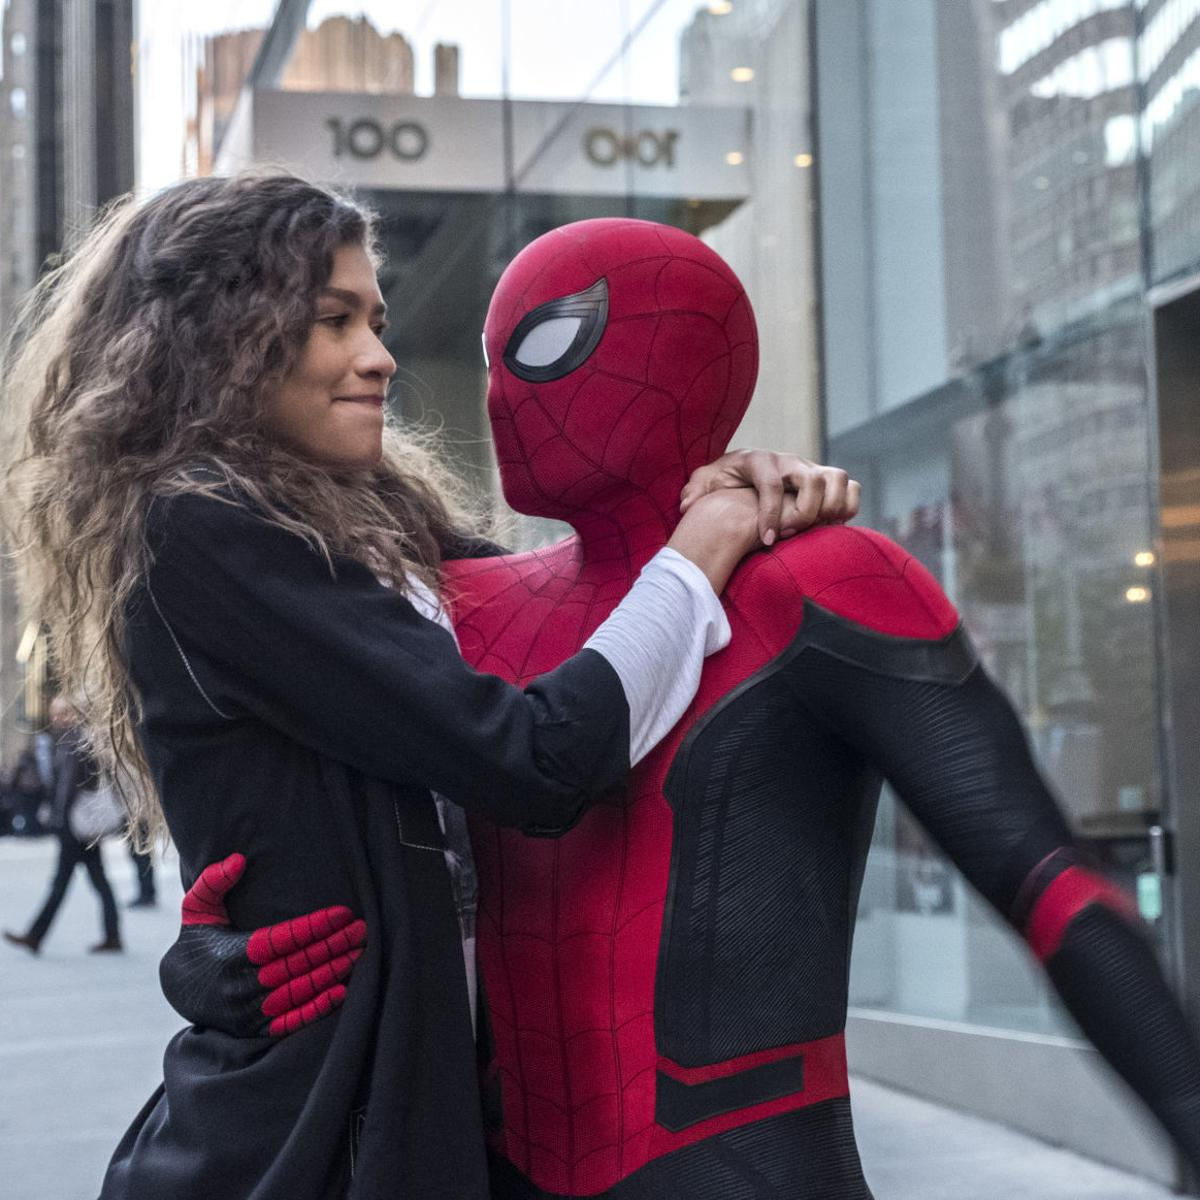 d817d07a82b30 Movie review: 'Spider-Man' swings again with a successful sequel ...